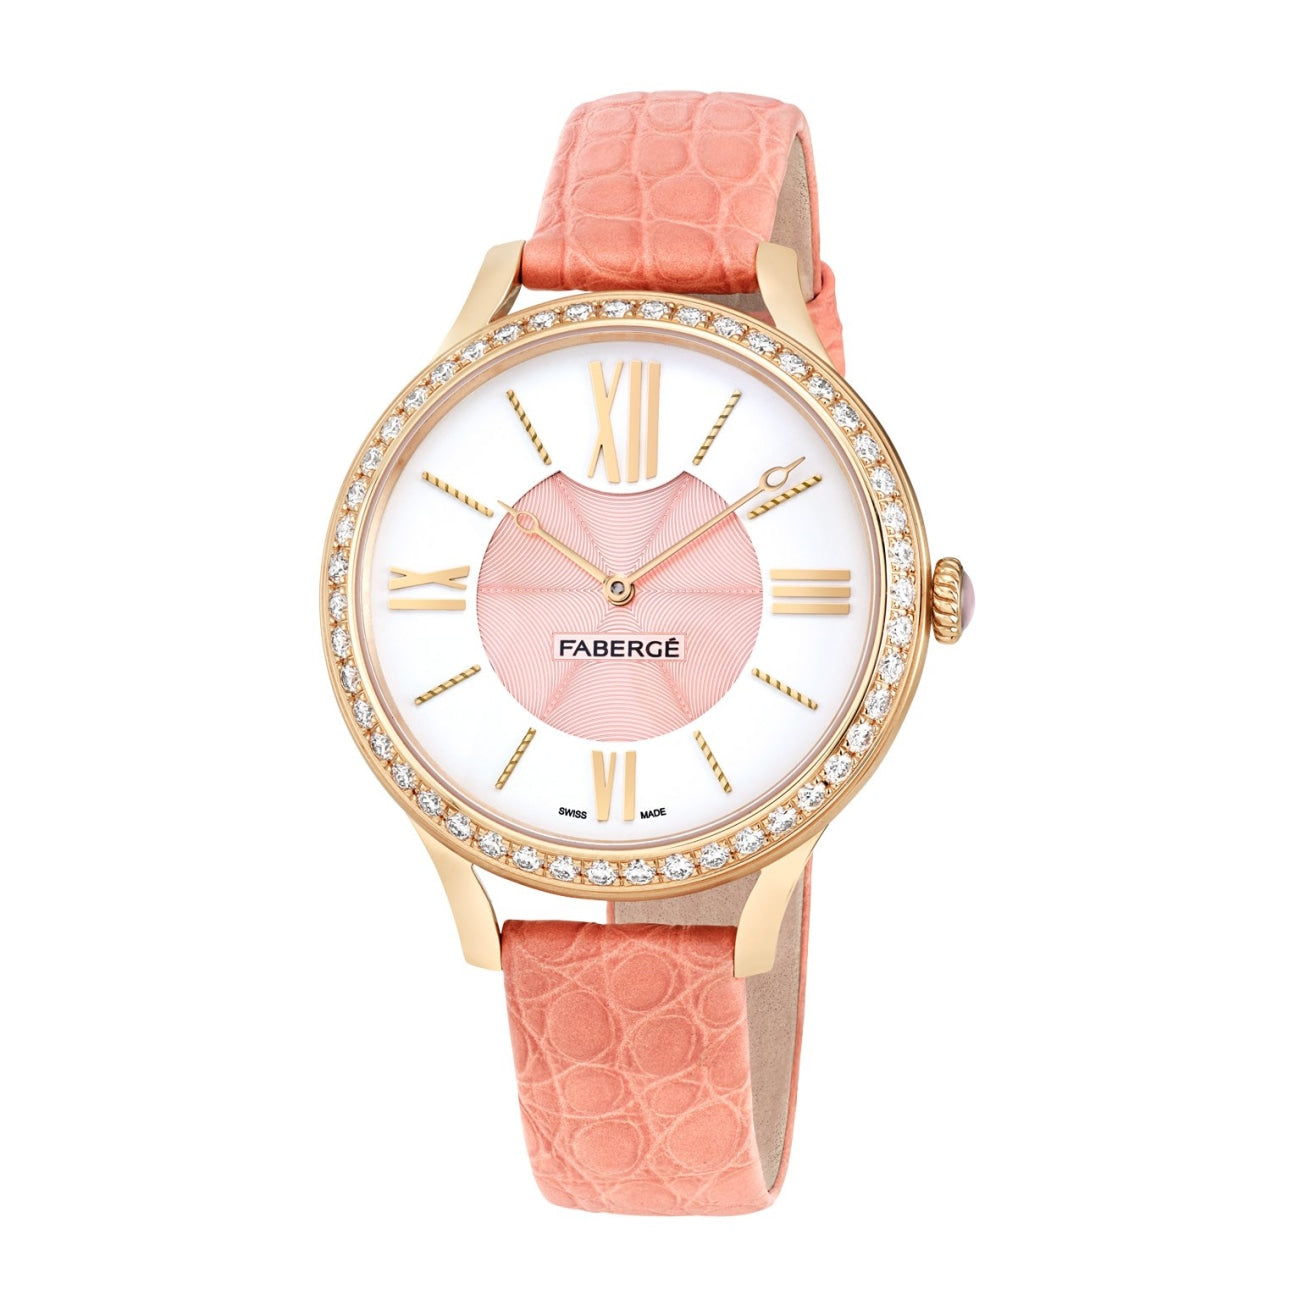 Fabergé Watches - FLIRT 36MM 18 KARAT ROSE GOLD - WHITE AND PINK DIAL | Manfredi Jewels